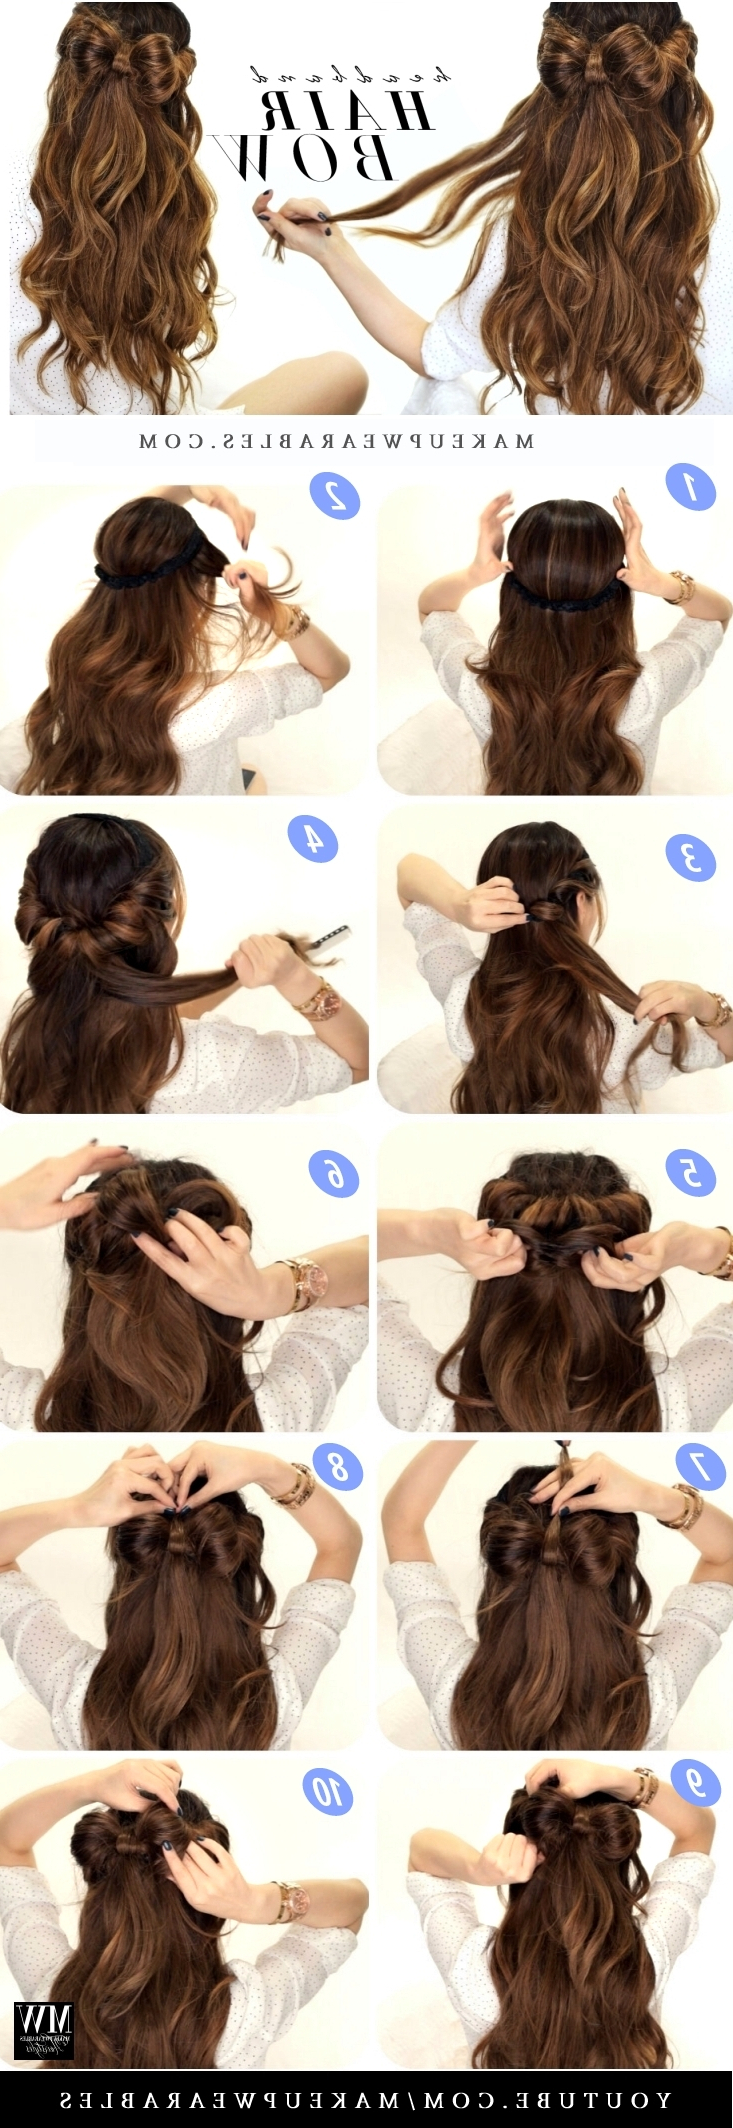 Everyday Hairstyles For Trendy Ponytail Bridal Hairstyles With Headband And Bow (Gallery 19 of 20)